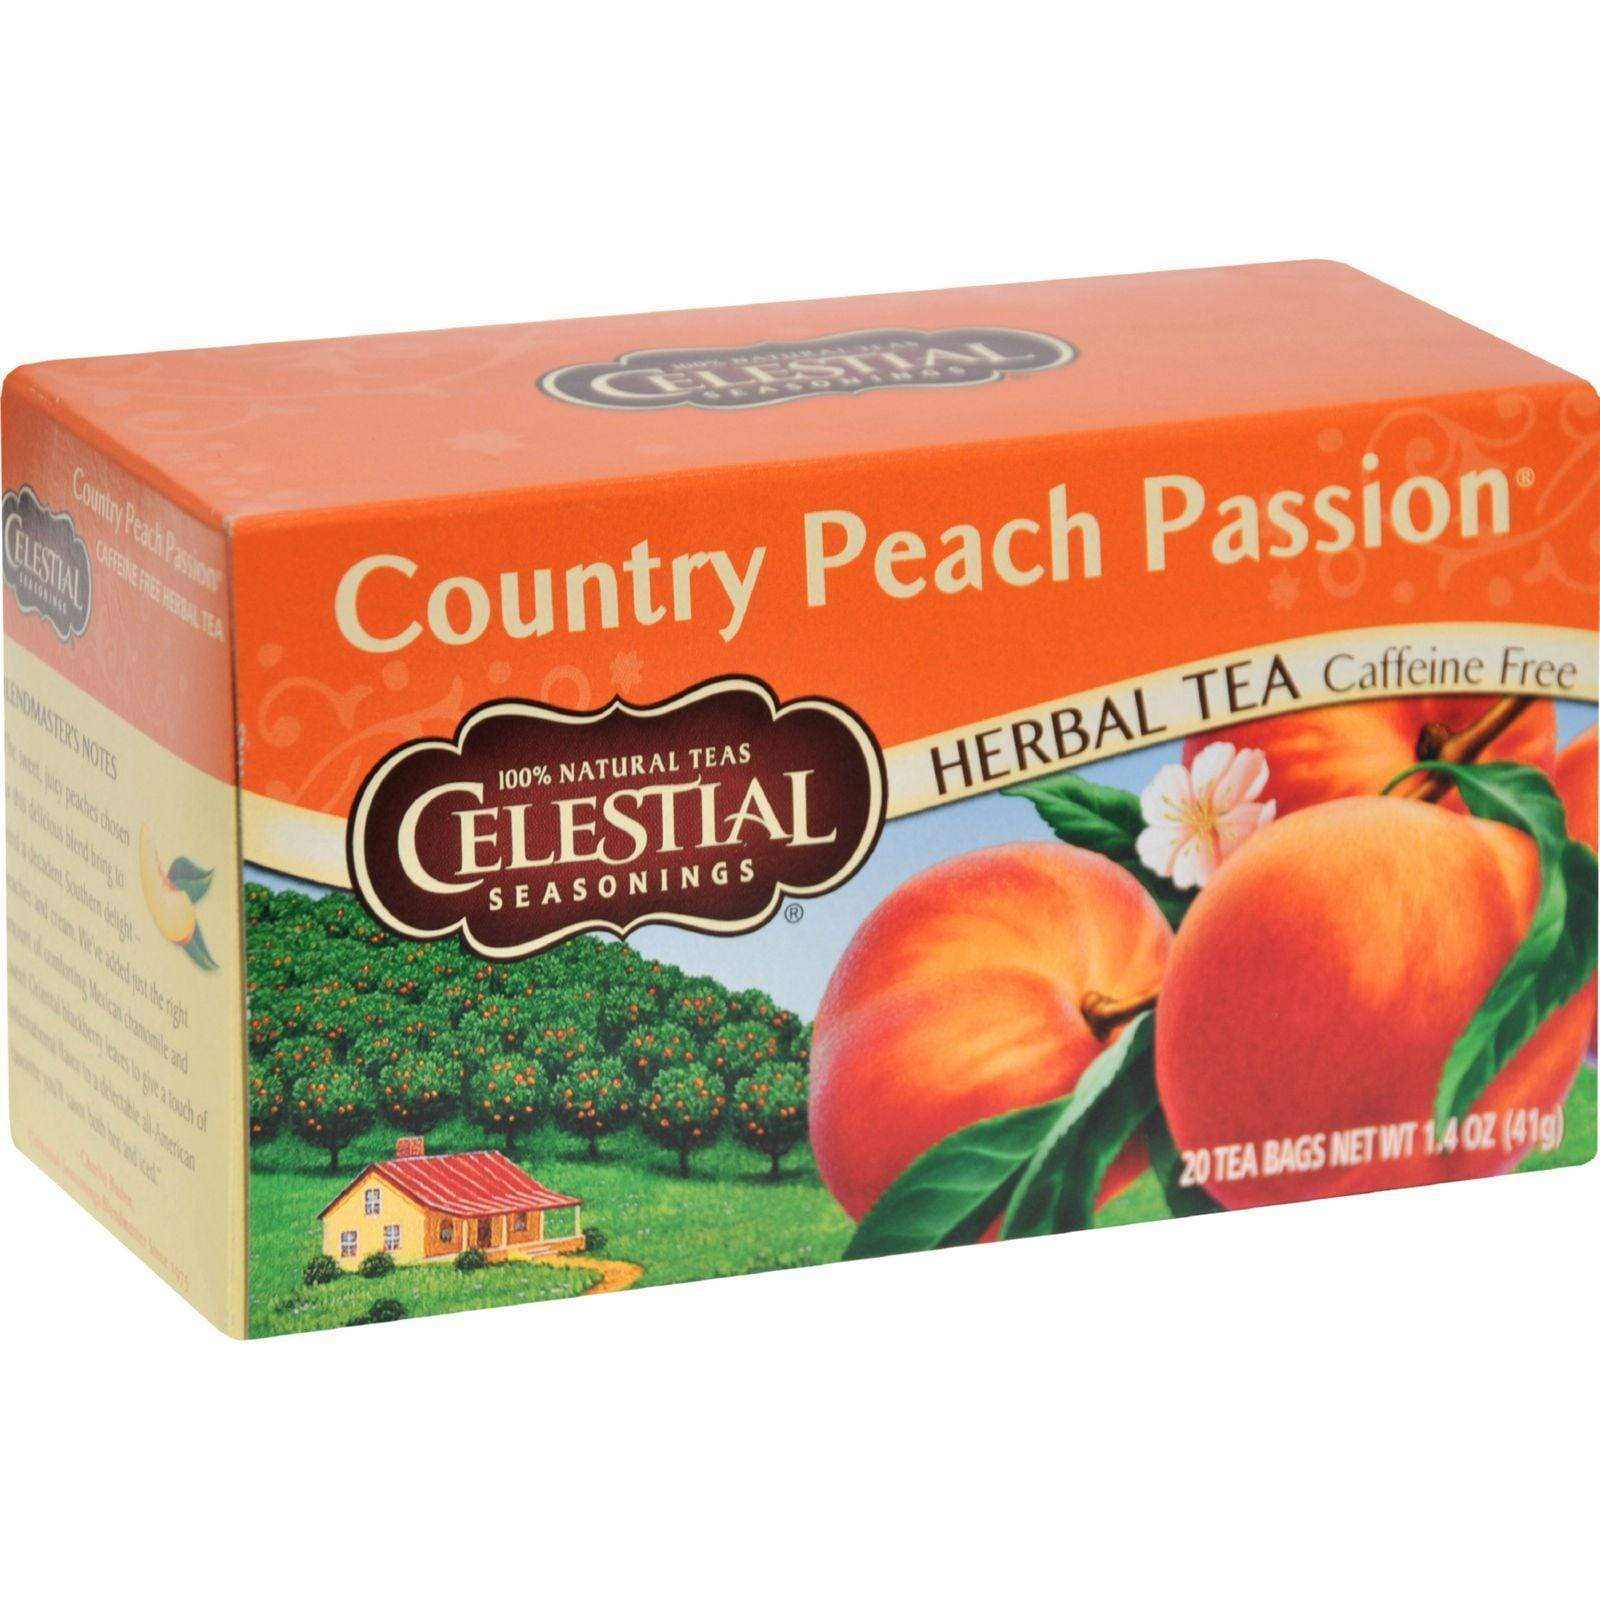 Celestial Seasonings Teas, Coffee & Energy drinks Celestial Seasonings Herbal Tea Caffeine Free Country Peach Passion - 20 Tea Bags - Case Of 6